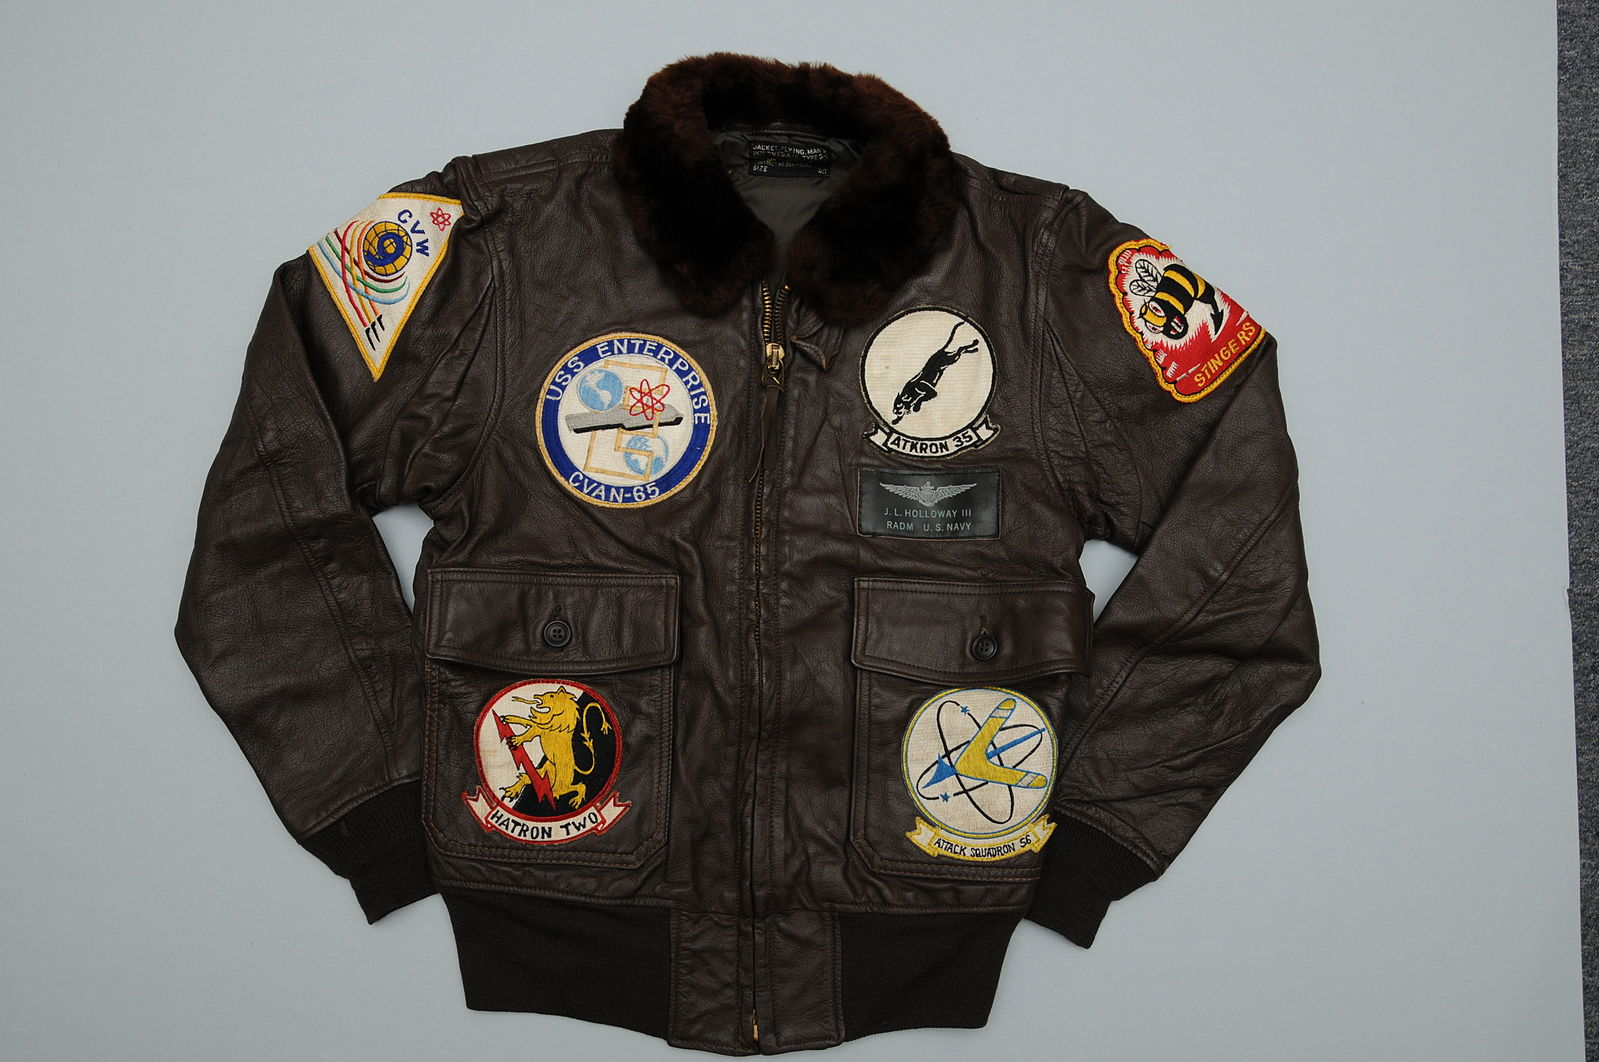 WW2 flying jacket